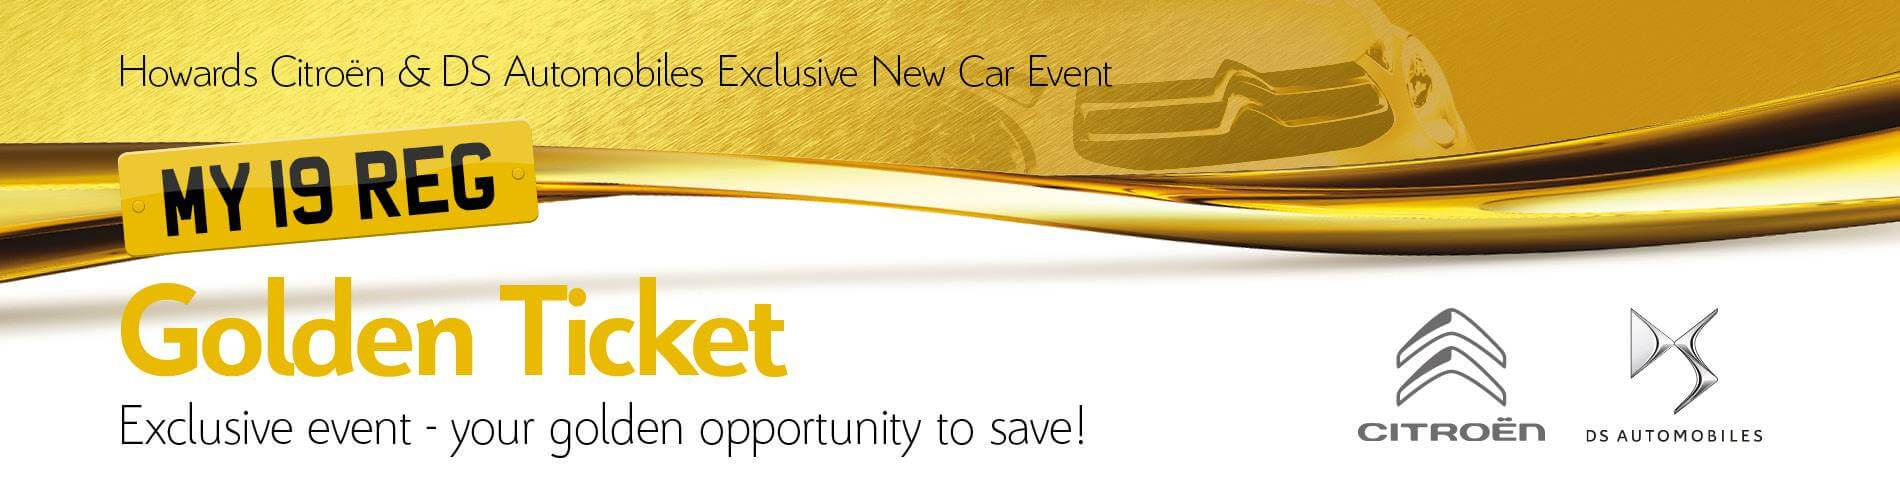 Citroen Golden Ticket